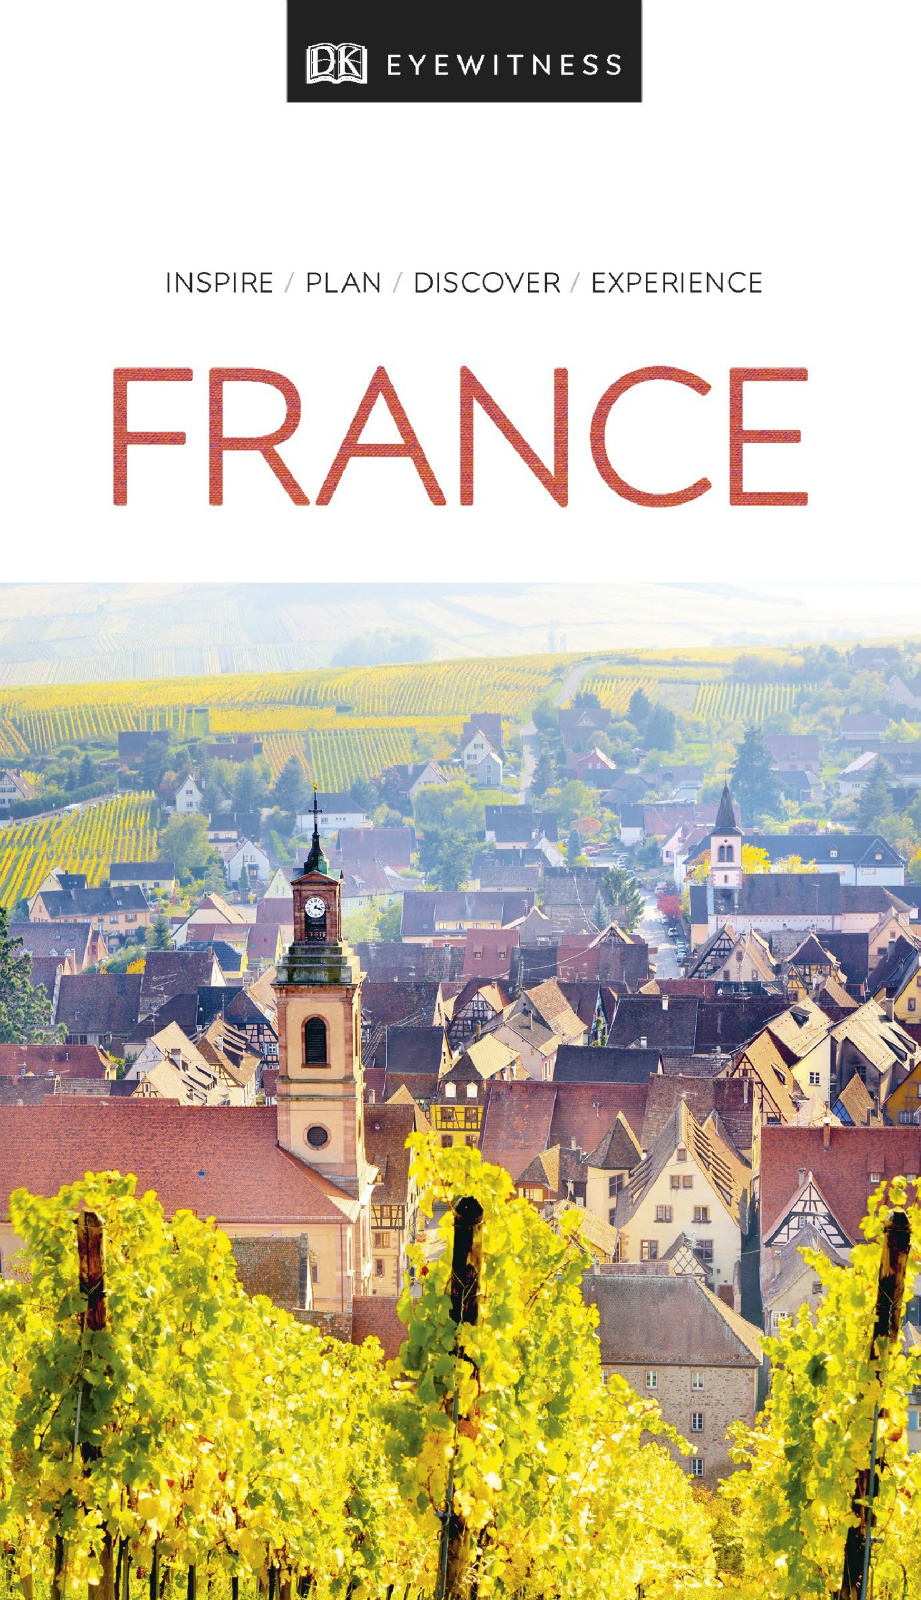 Dk Eyewitness Travel Guide France Flip Ebook Pages 1 50 Anyflip Anyflip